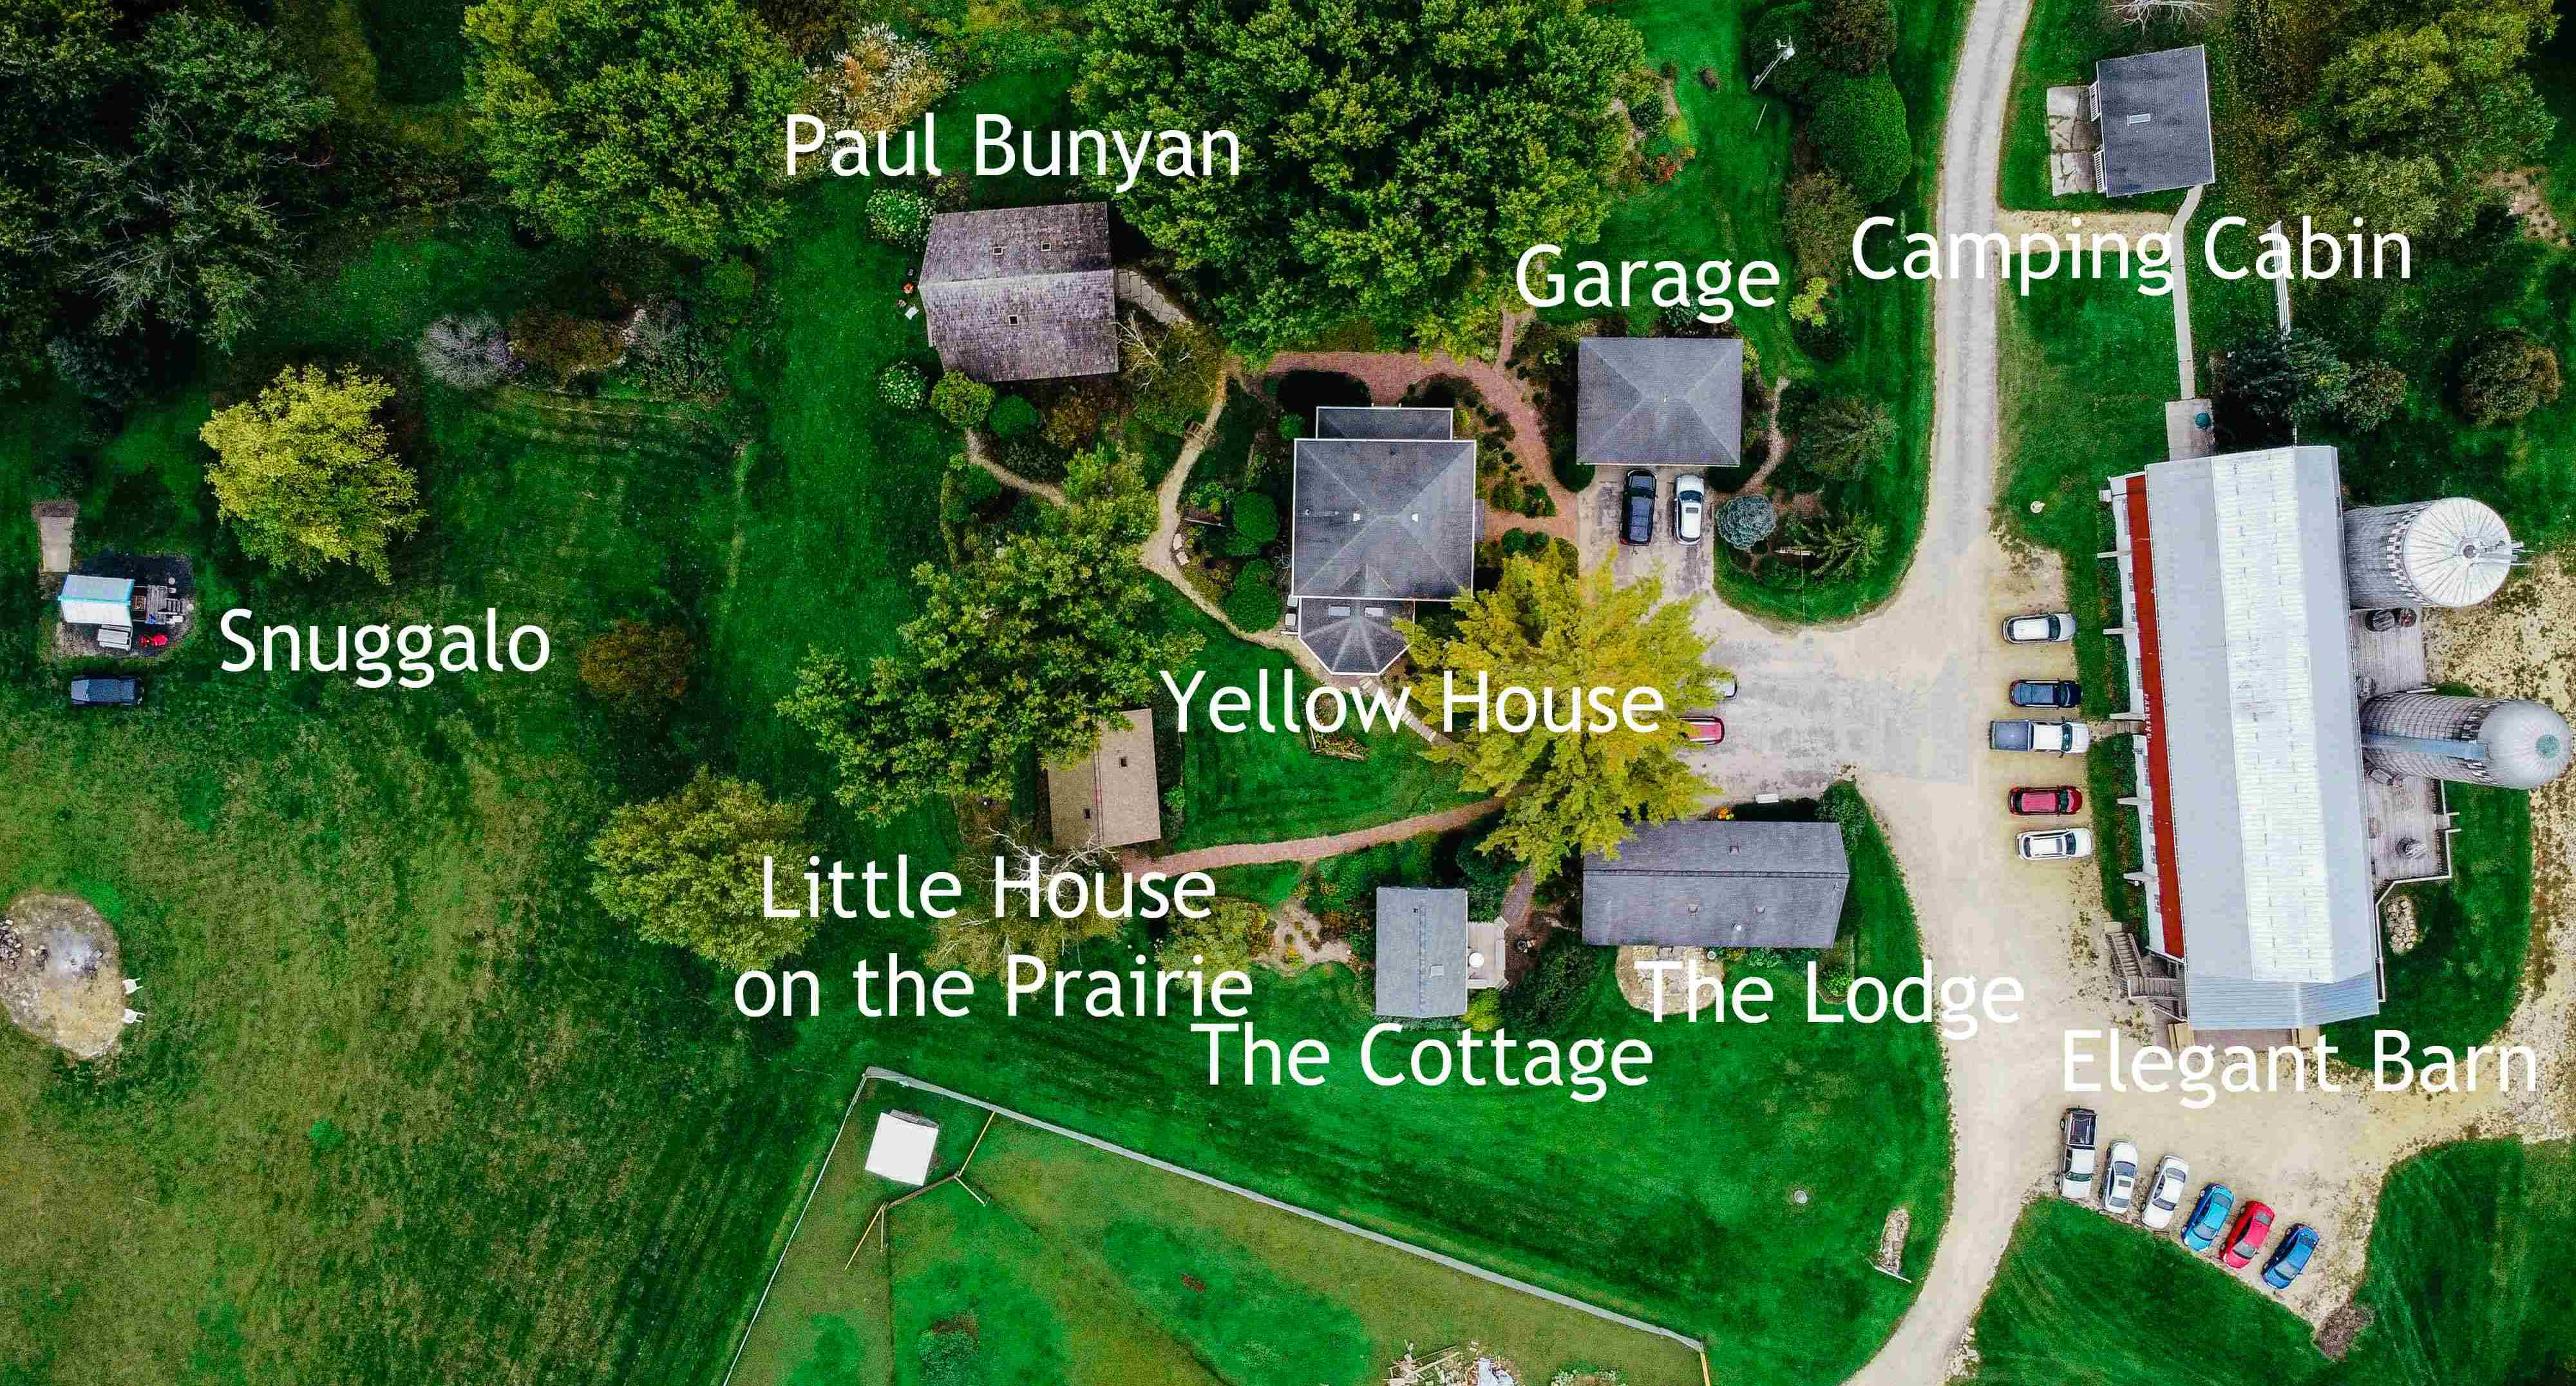 Buildings at Justin Trails Resort with labels